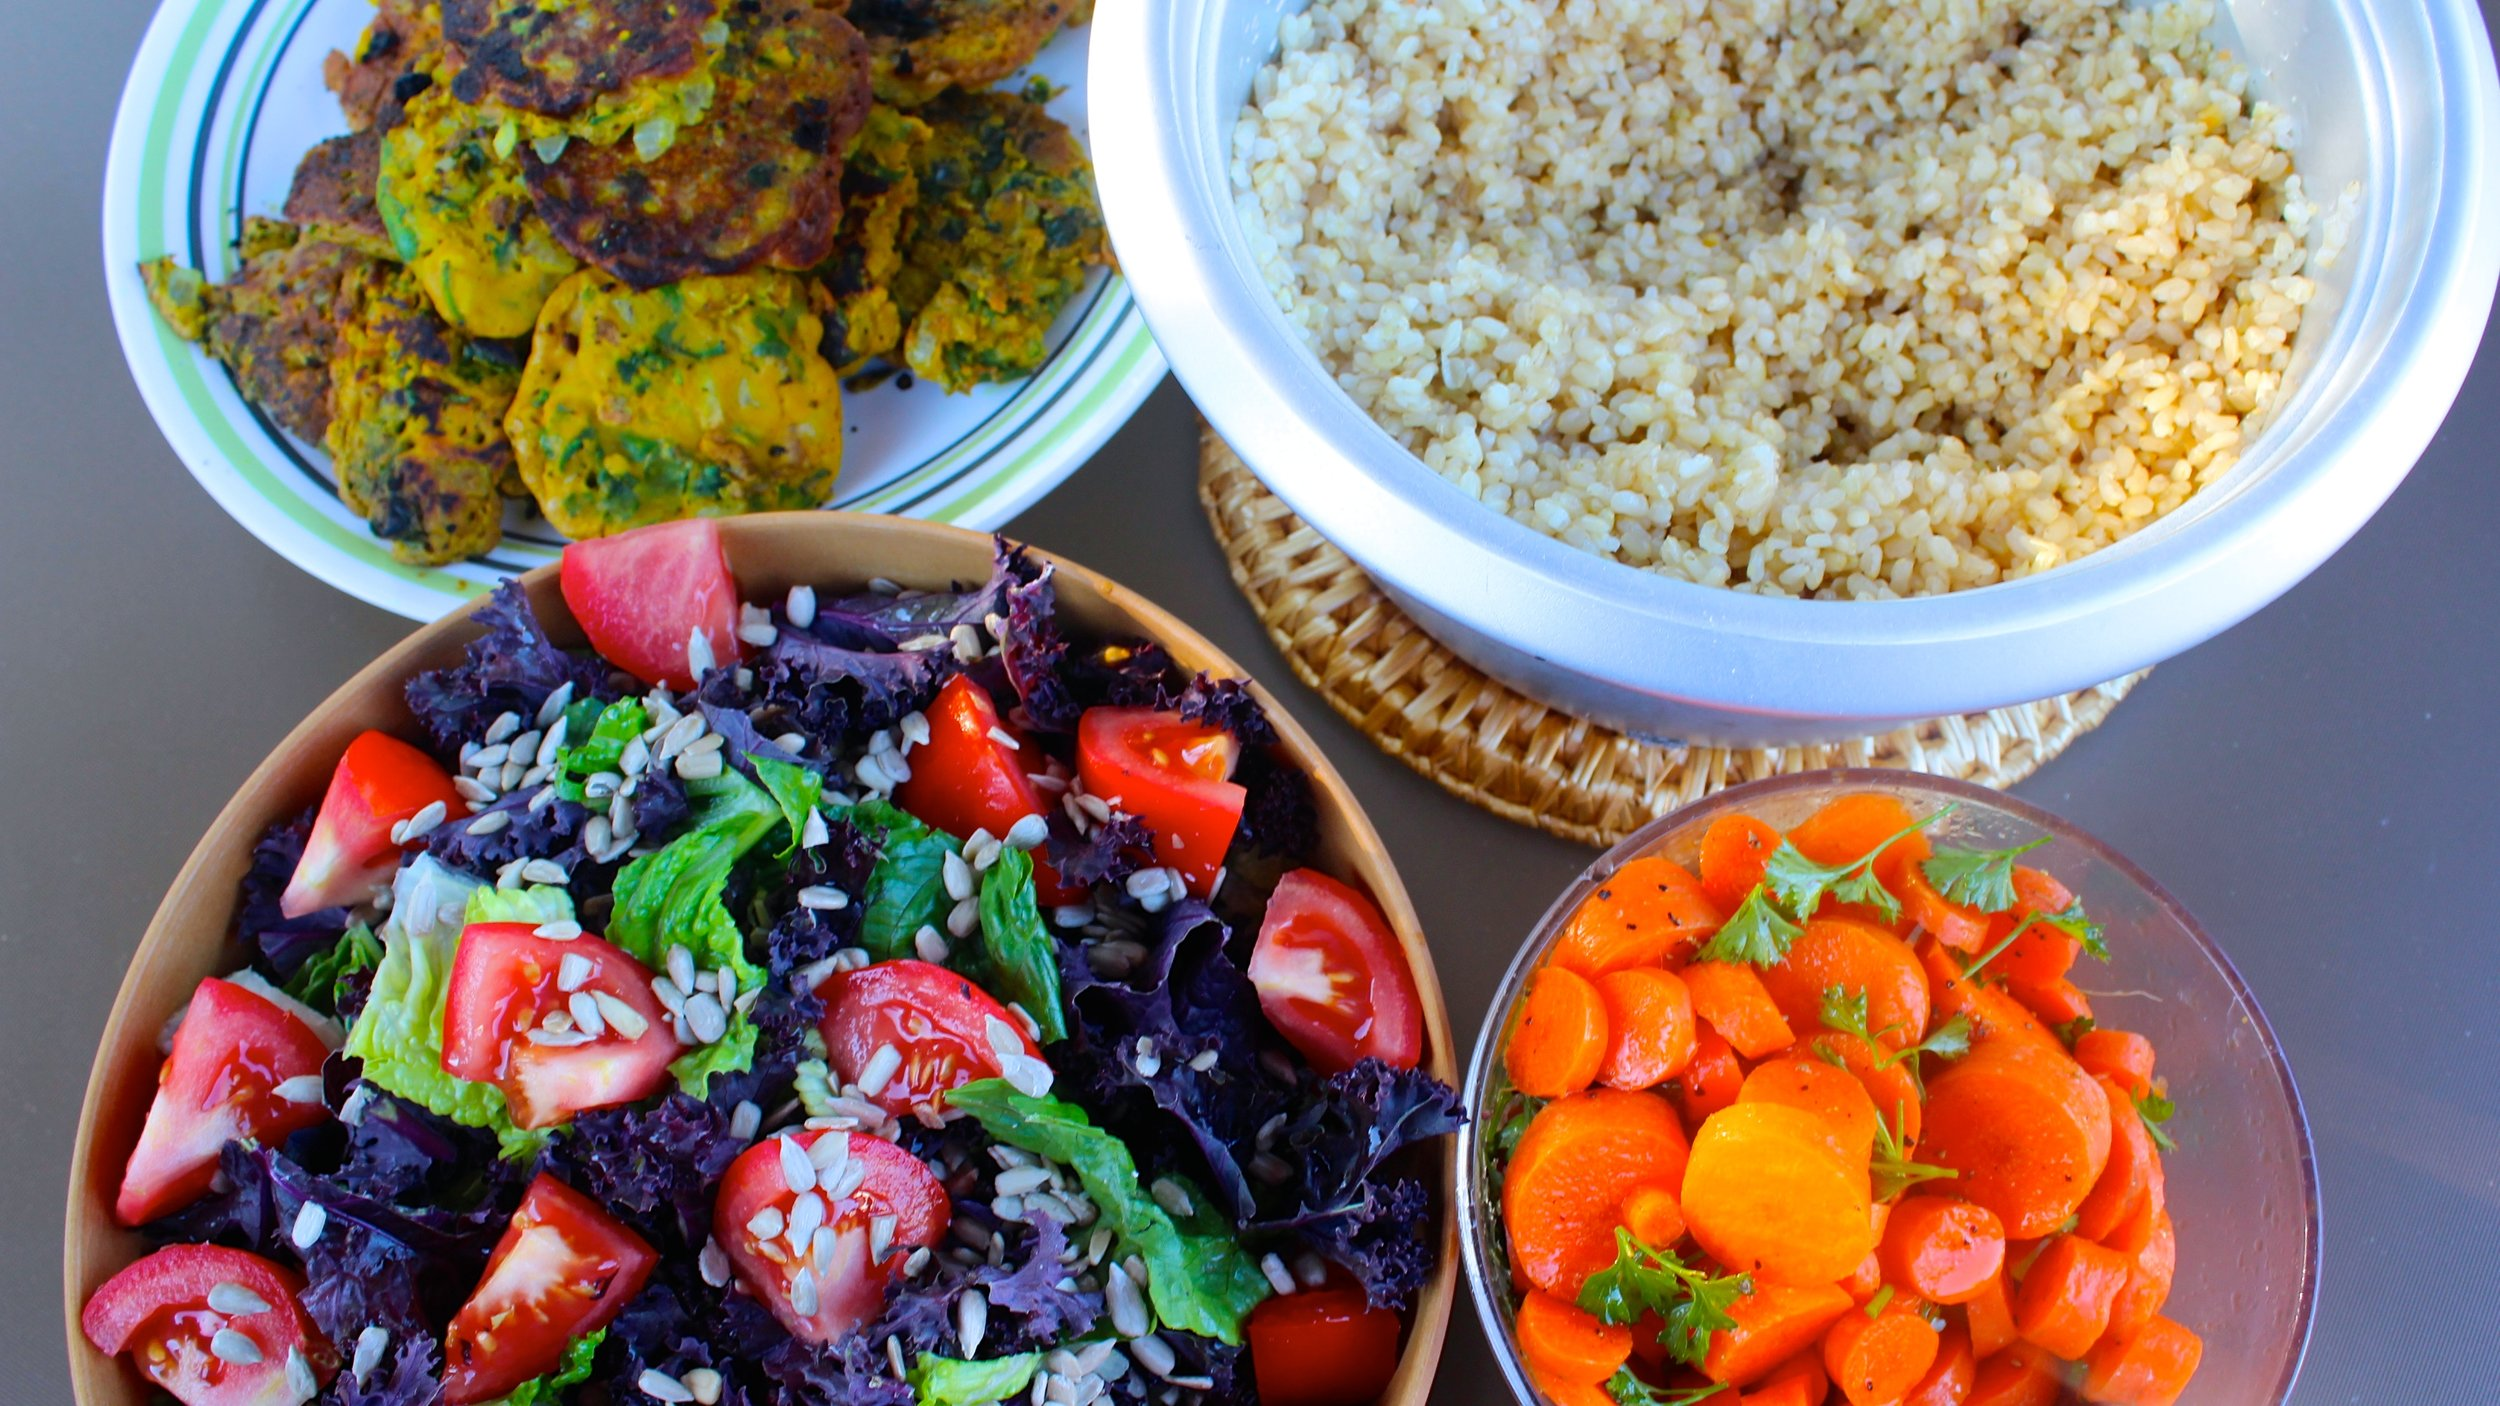 Chickpea patties, brown rice, and salads